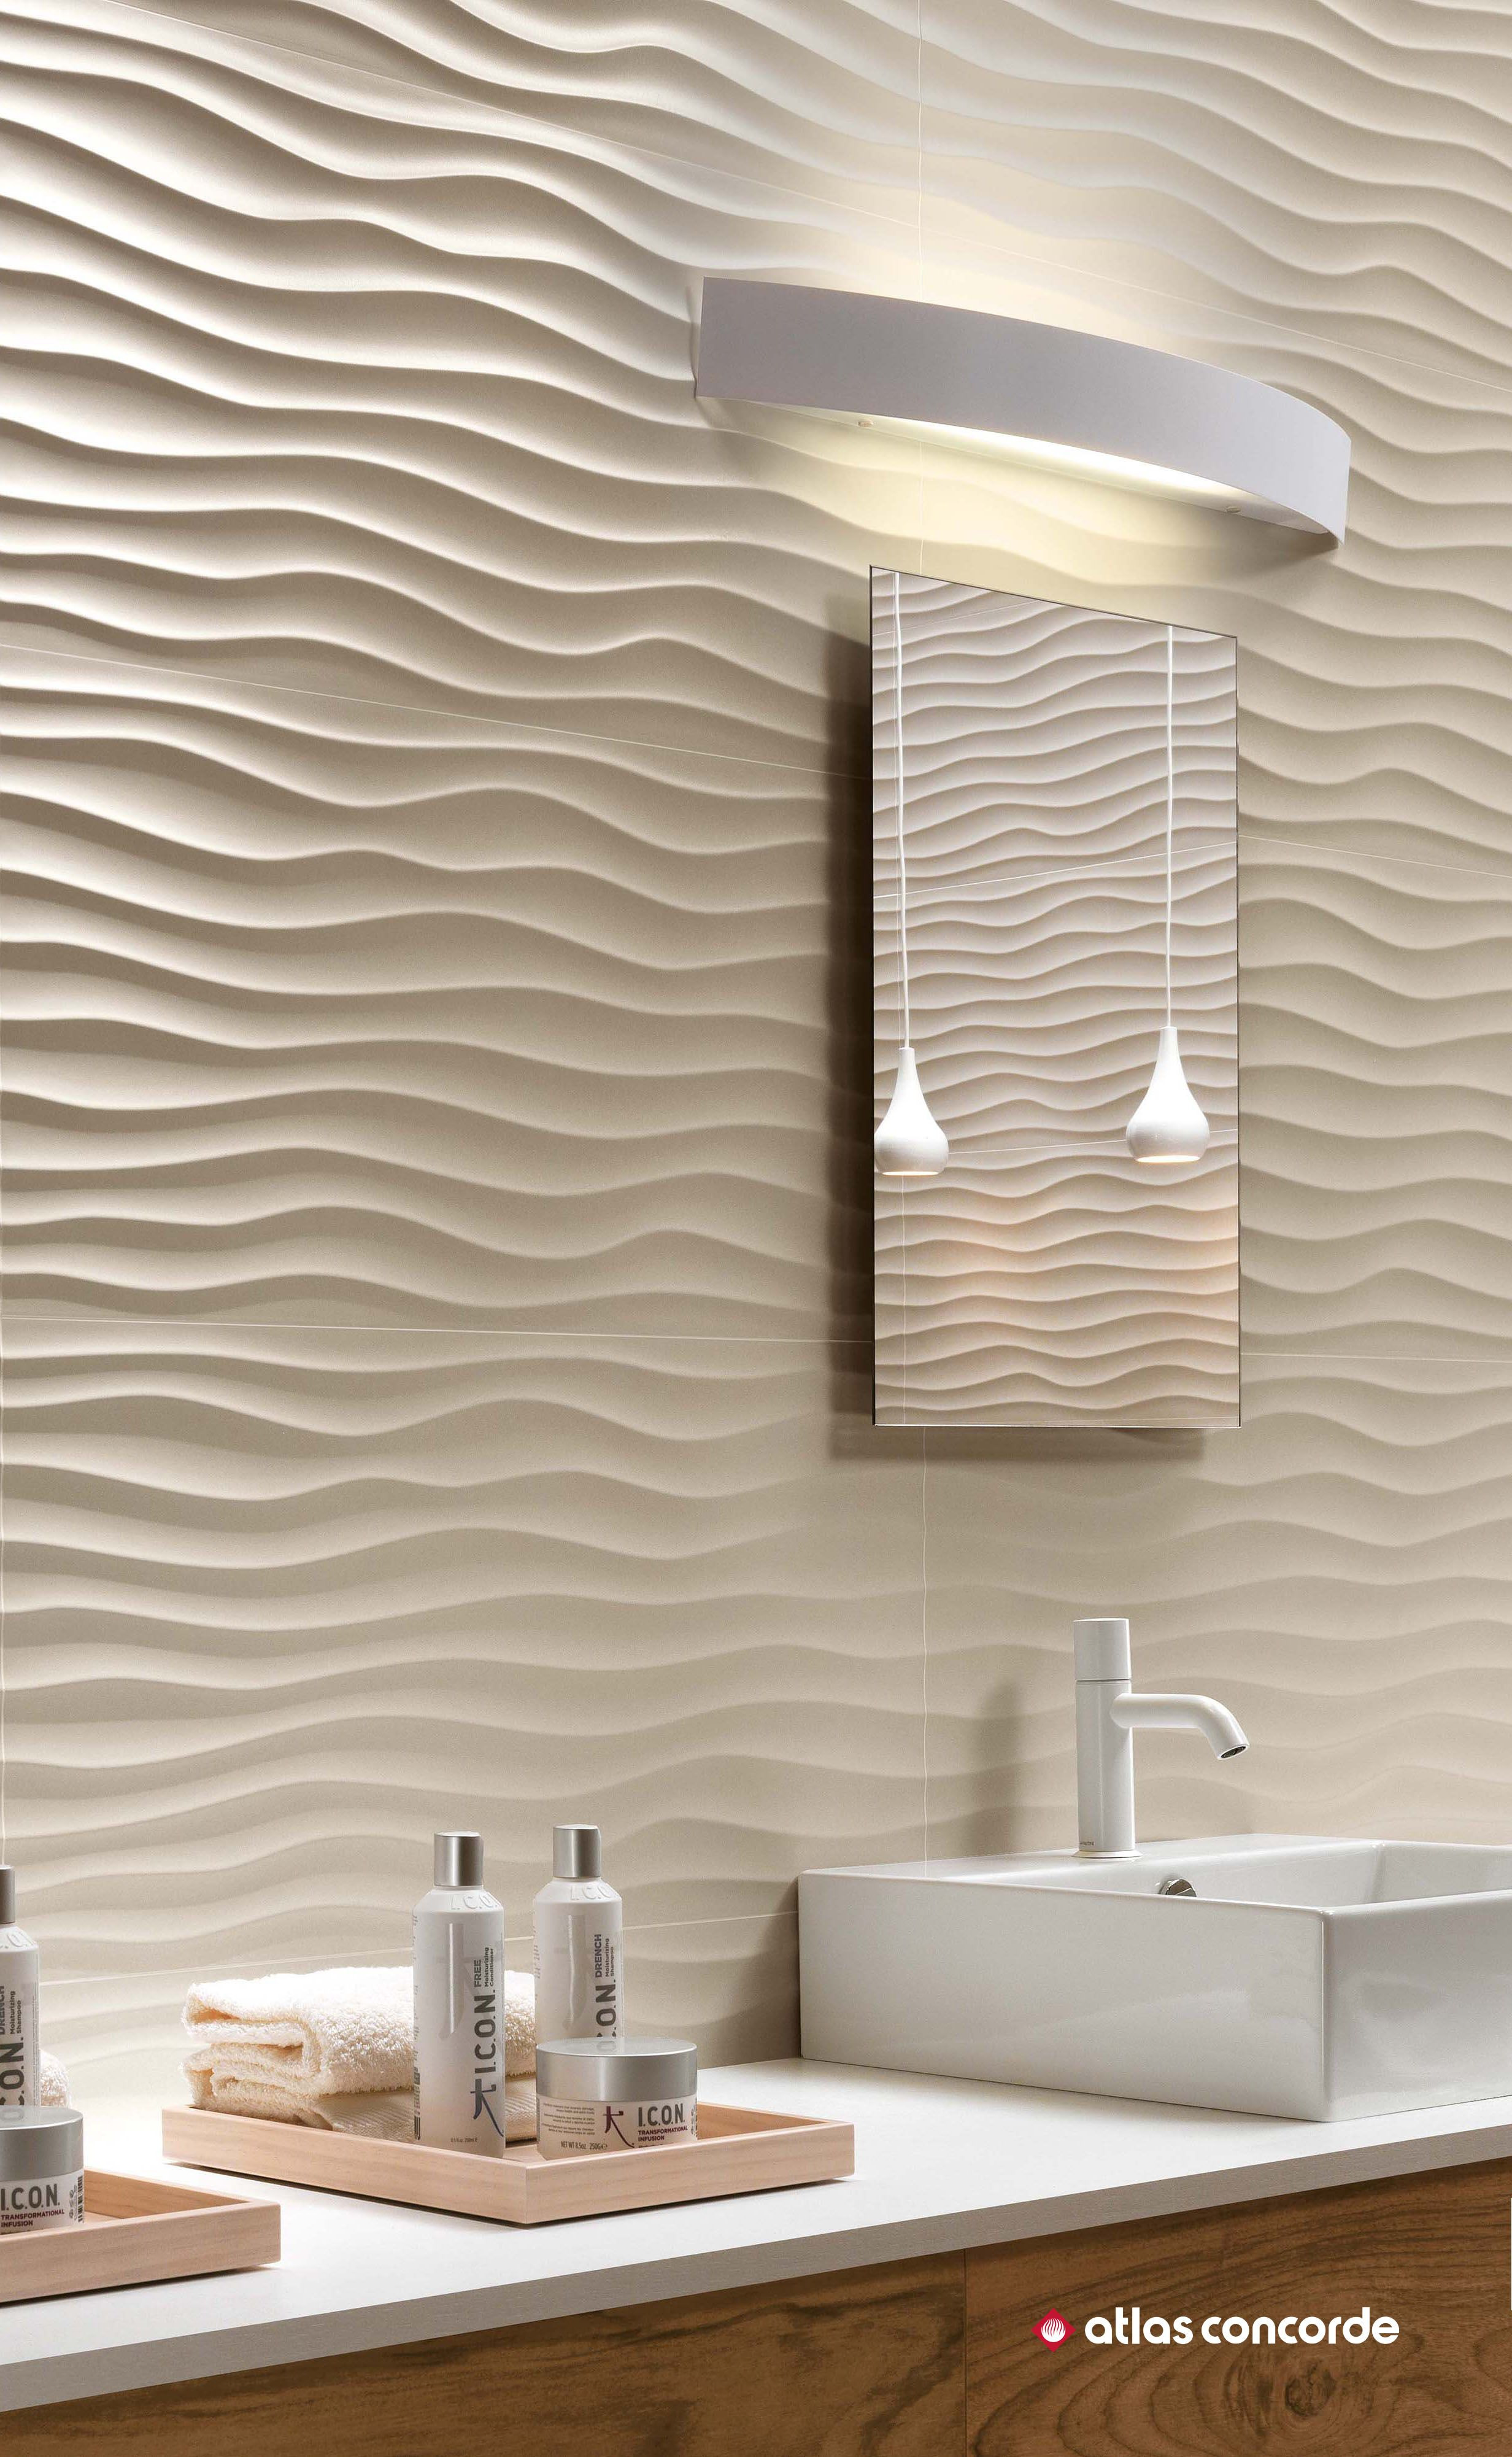 Decorative Tiles for Bathroom Awesome 3d Wall Tiles for Bathrooms Kitchens Spas